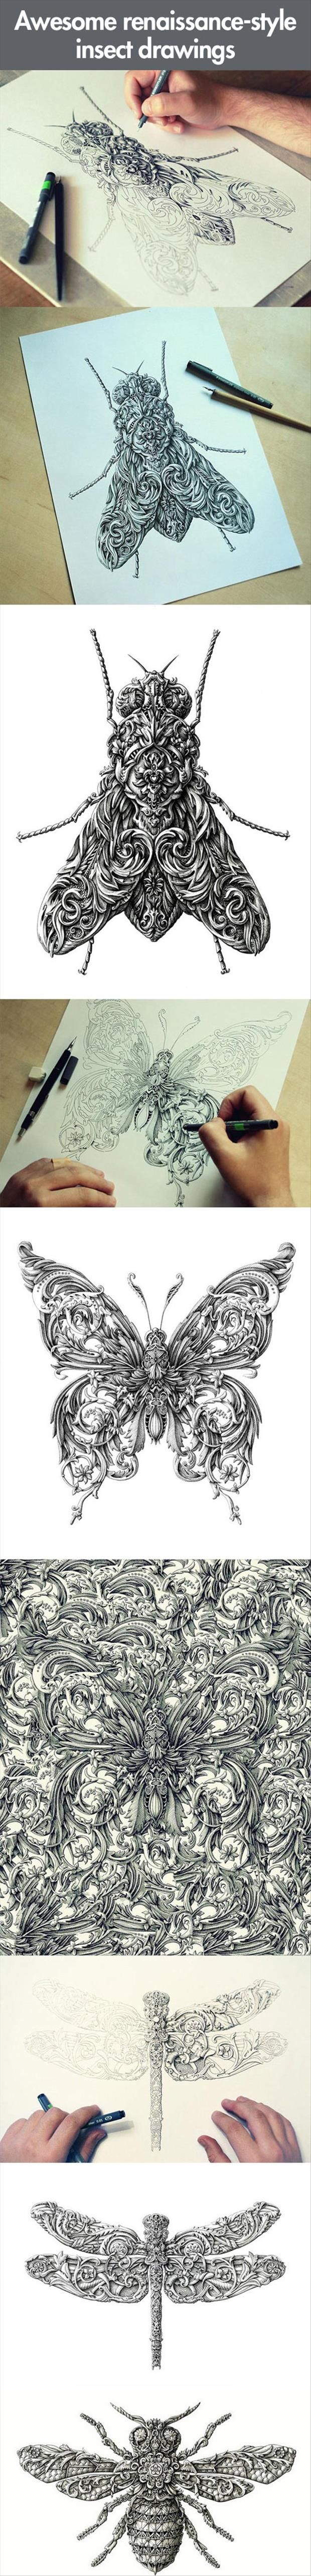 Now That's Art! – 23 Pics: Insect Drawings, Awesome Renaissance Style, Renaissance Style Insect, Birds Insects Flowers, Ink Drawings, Distinctive Insects, Drawing Insects, Awesome Art, Ornate Insects